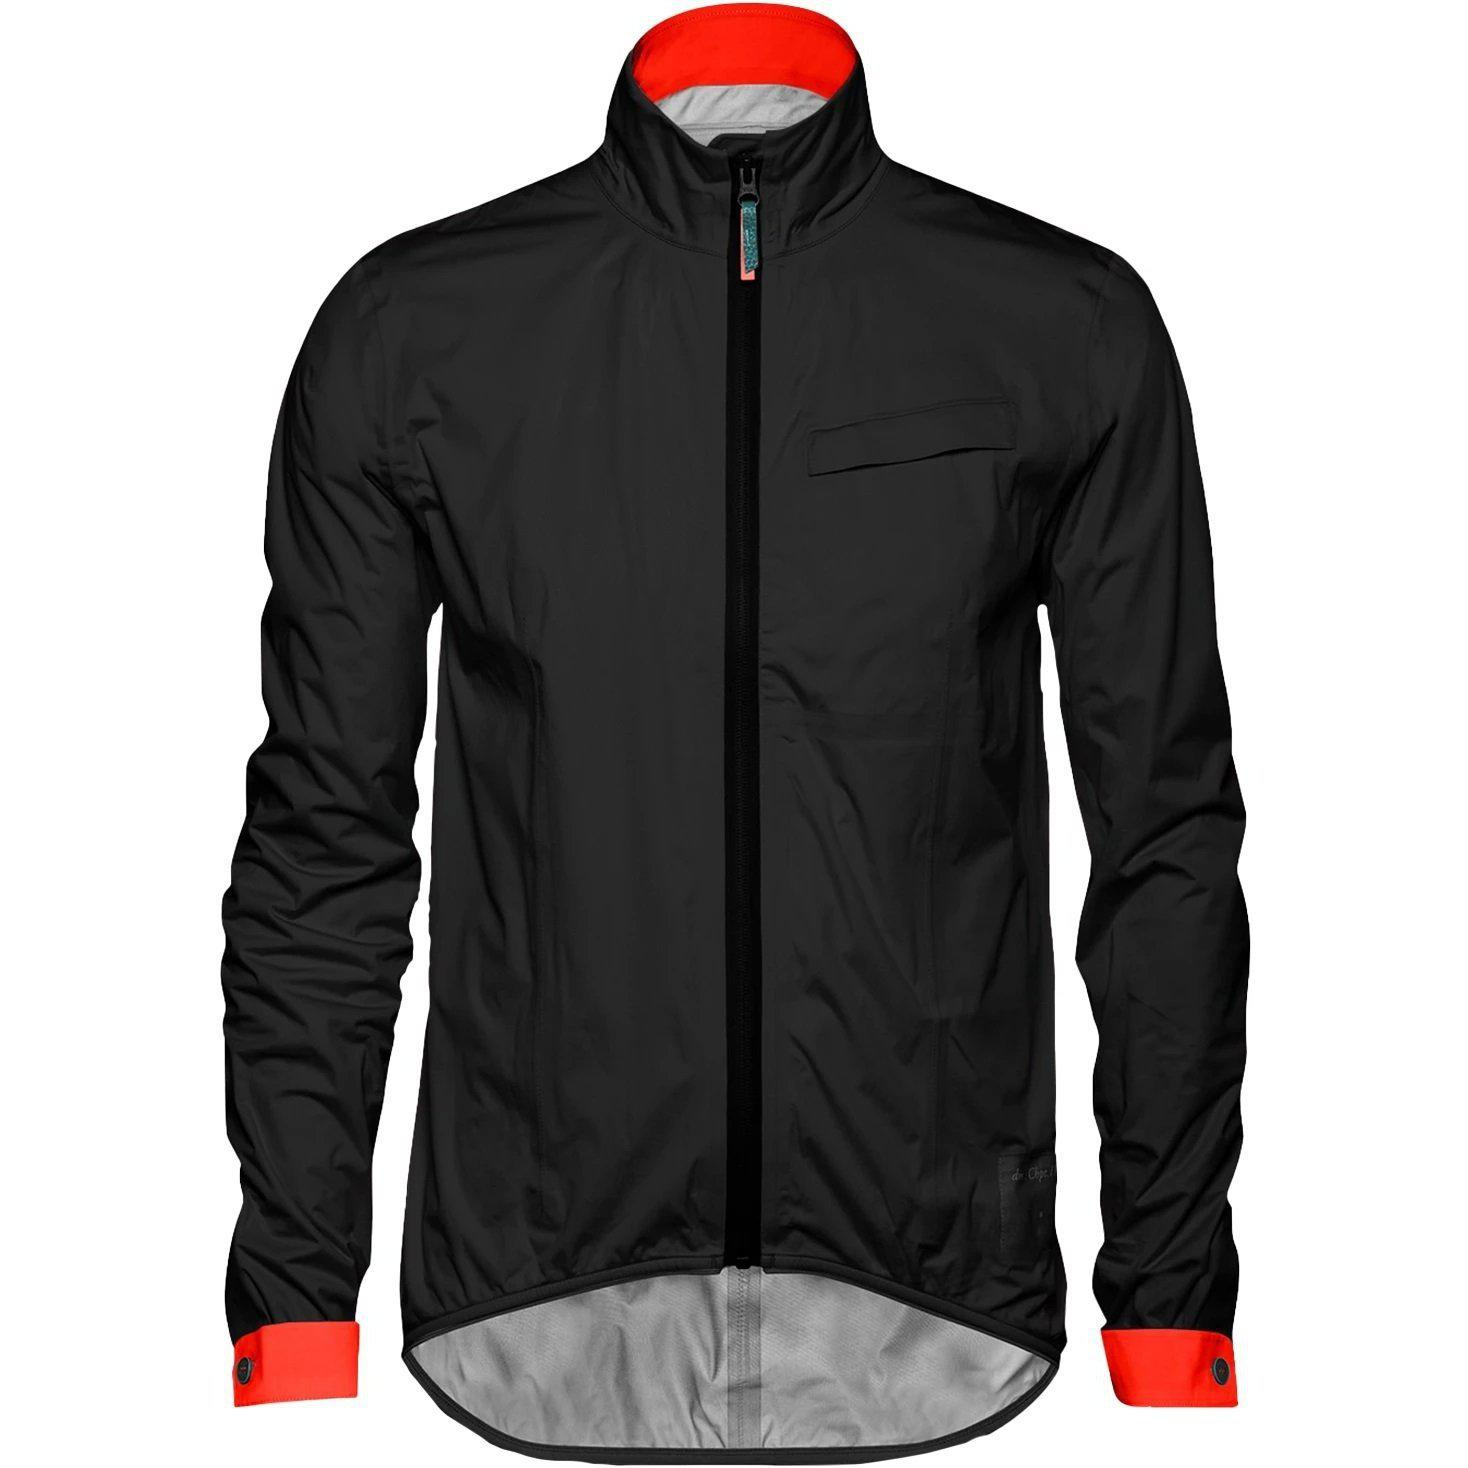 Chpt3-Chpt3 K61 1.42 Mk2 Jacket-C3 Black-S-CST92001540852-saddleback-elite-performance-cycling